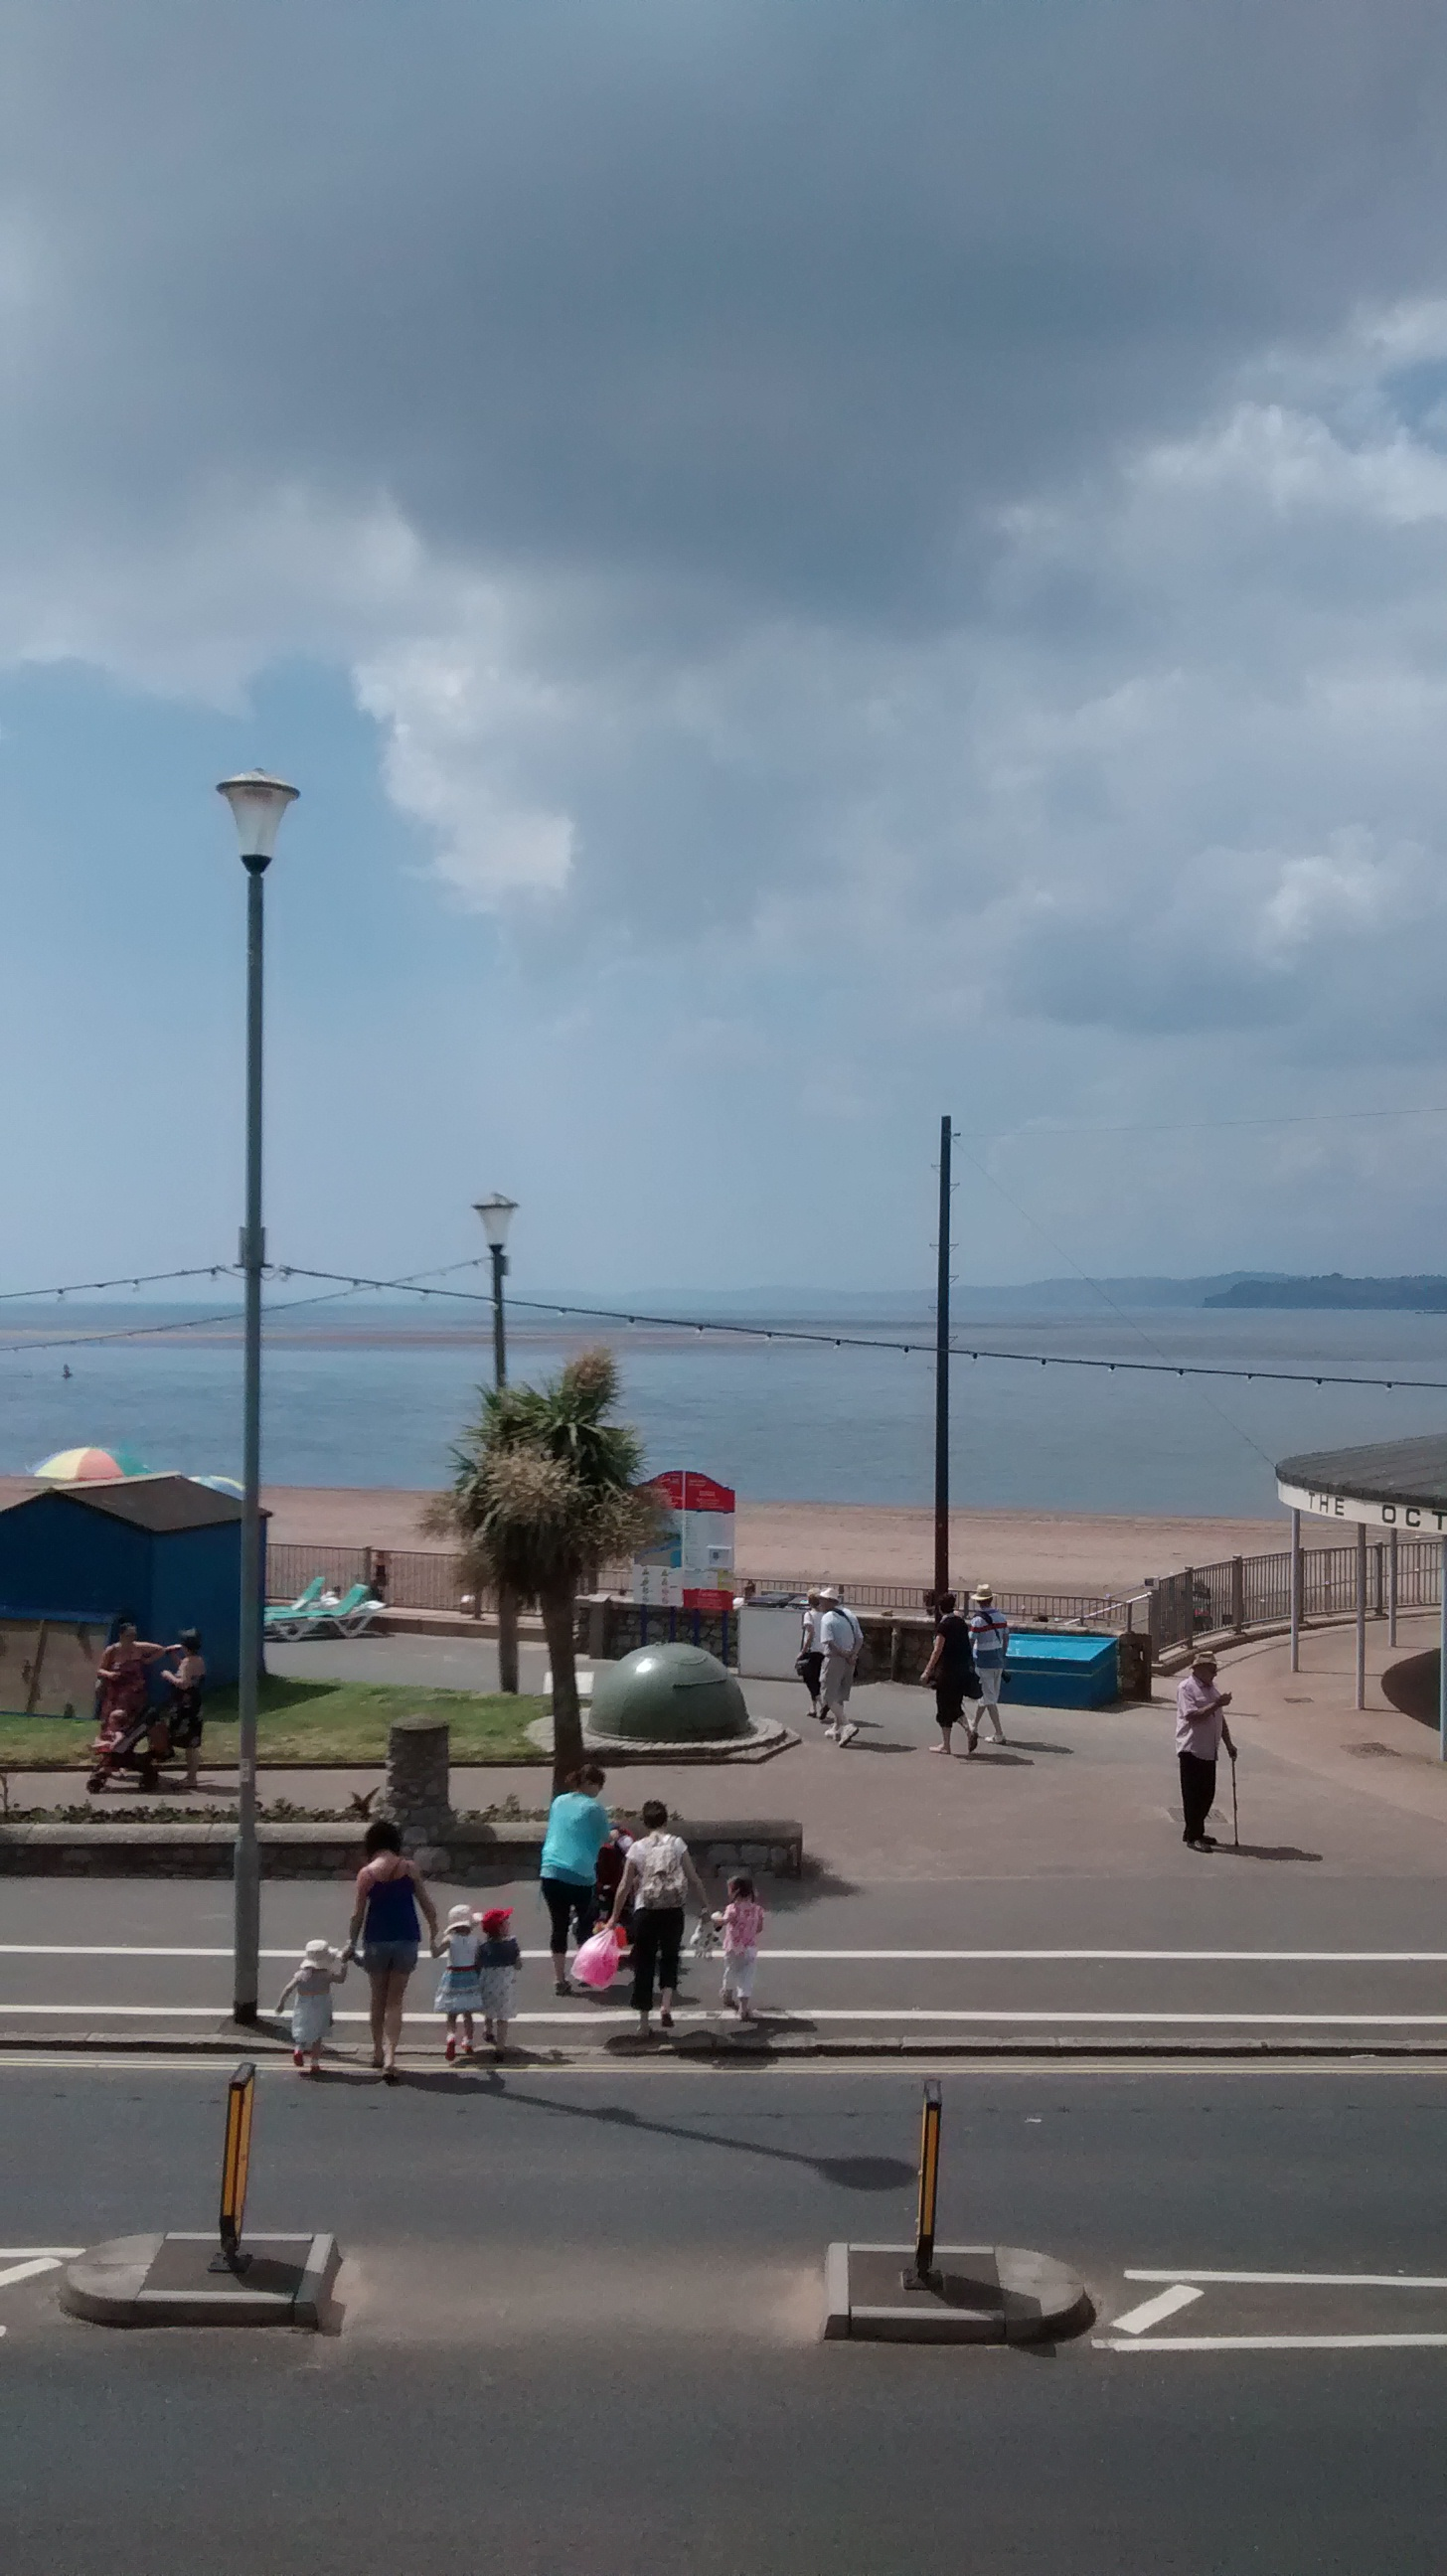 photo taken from balcony to illustrate short walk across road to beach